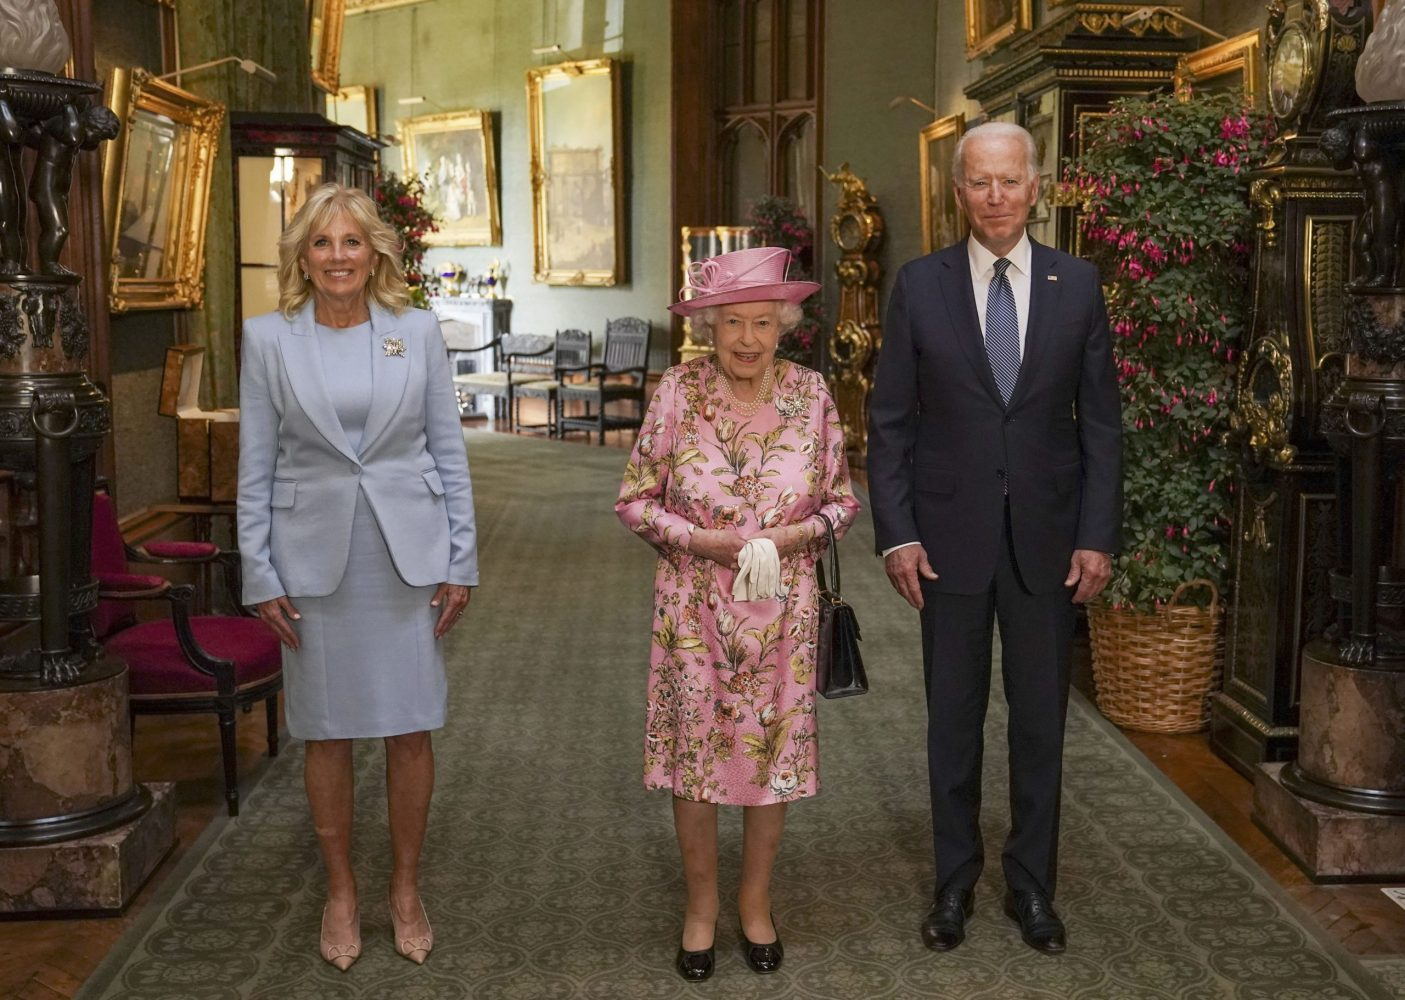 The Queen hosted President and First Lady Biden for tea at Windsor (@RoyalFamily)